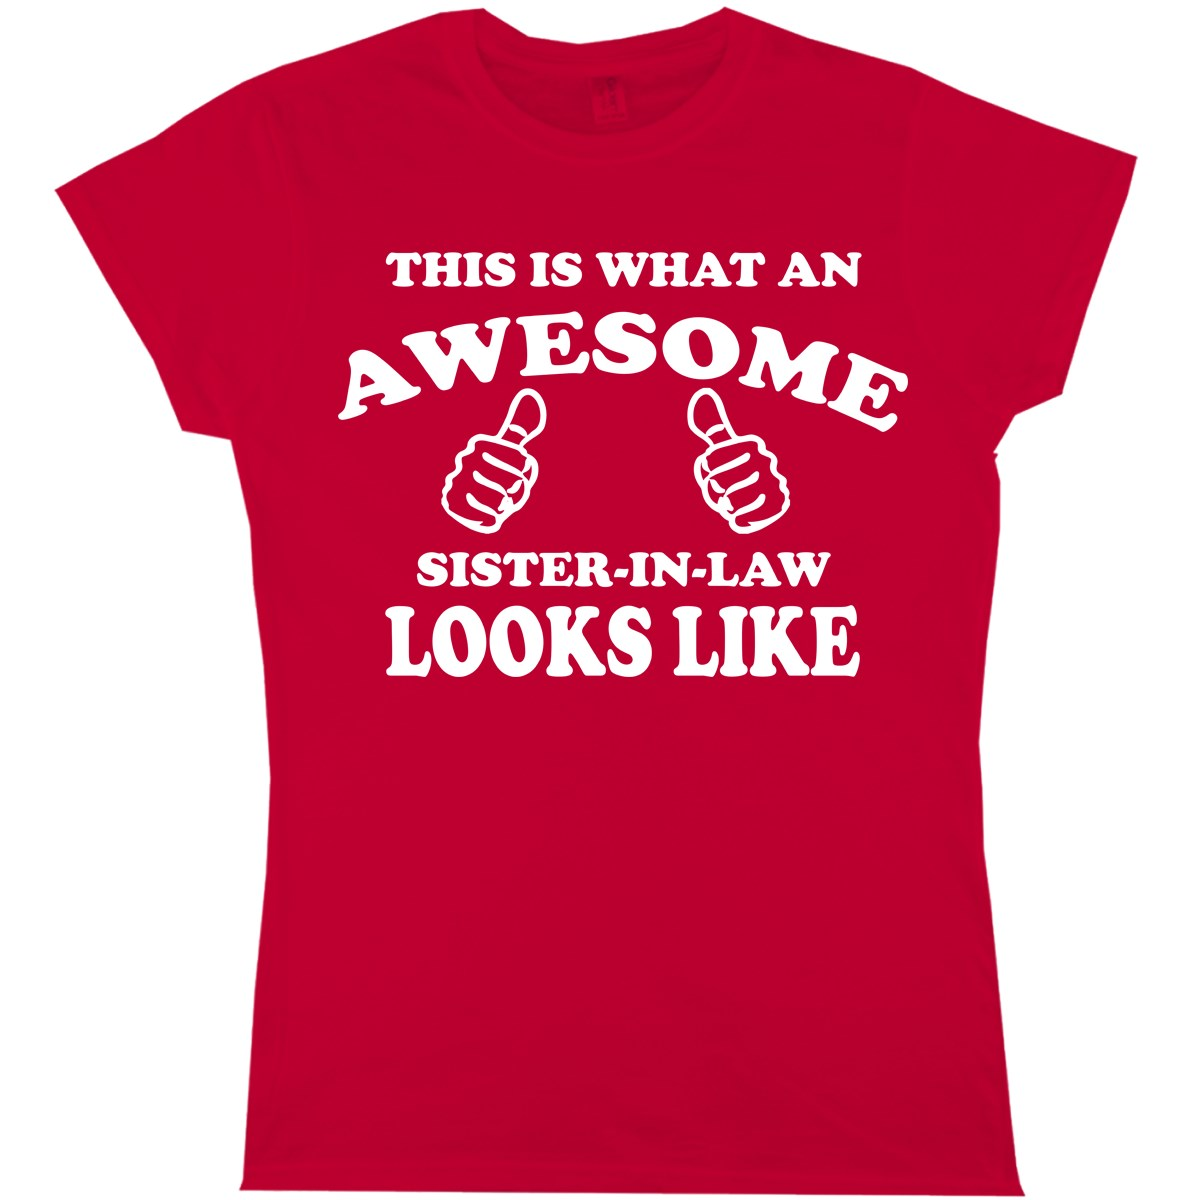 This Is What An Awesome Sister In Law Looks Like men Womens T Shirt Ladies Funny Print T Shirt Mens Short Sleeve Hot Tops in T Shirts from Men 39 s Clothing